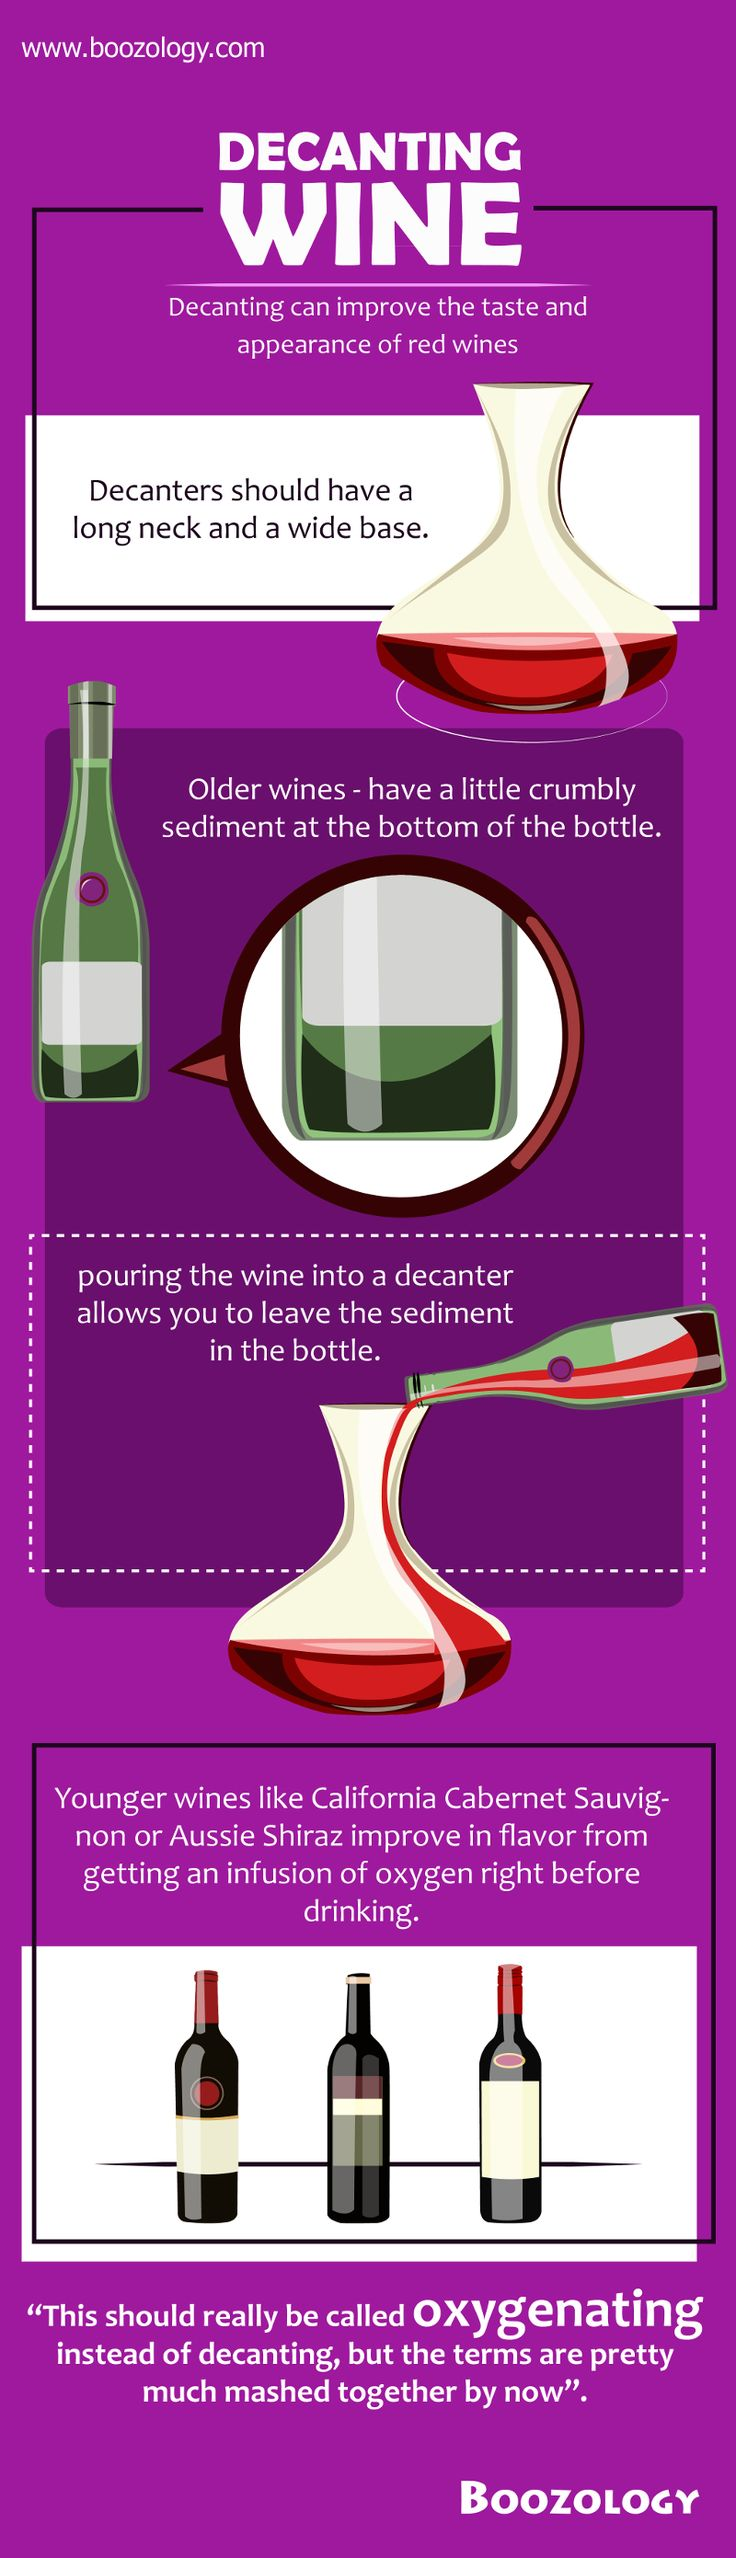 Wine 101: Bigger is better when it comes to glasses, and don't fill a glass more than halfway—you want plenty of room to swirl and sniff. http://www.boozology.com/blog/decanting-wine